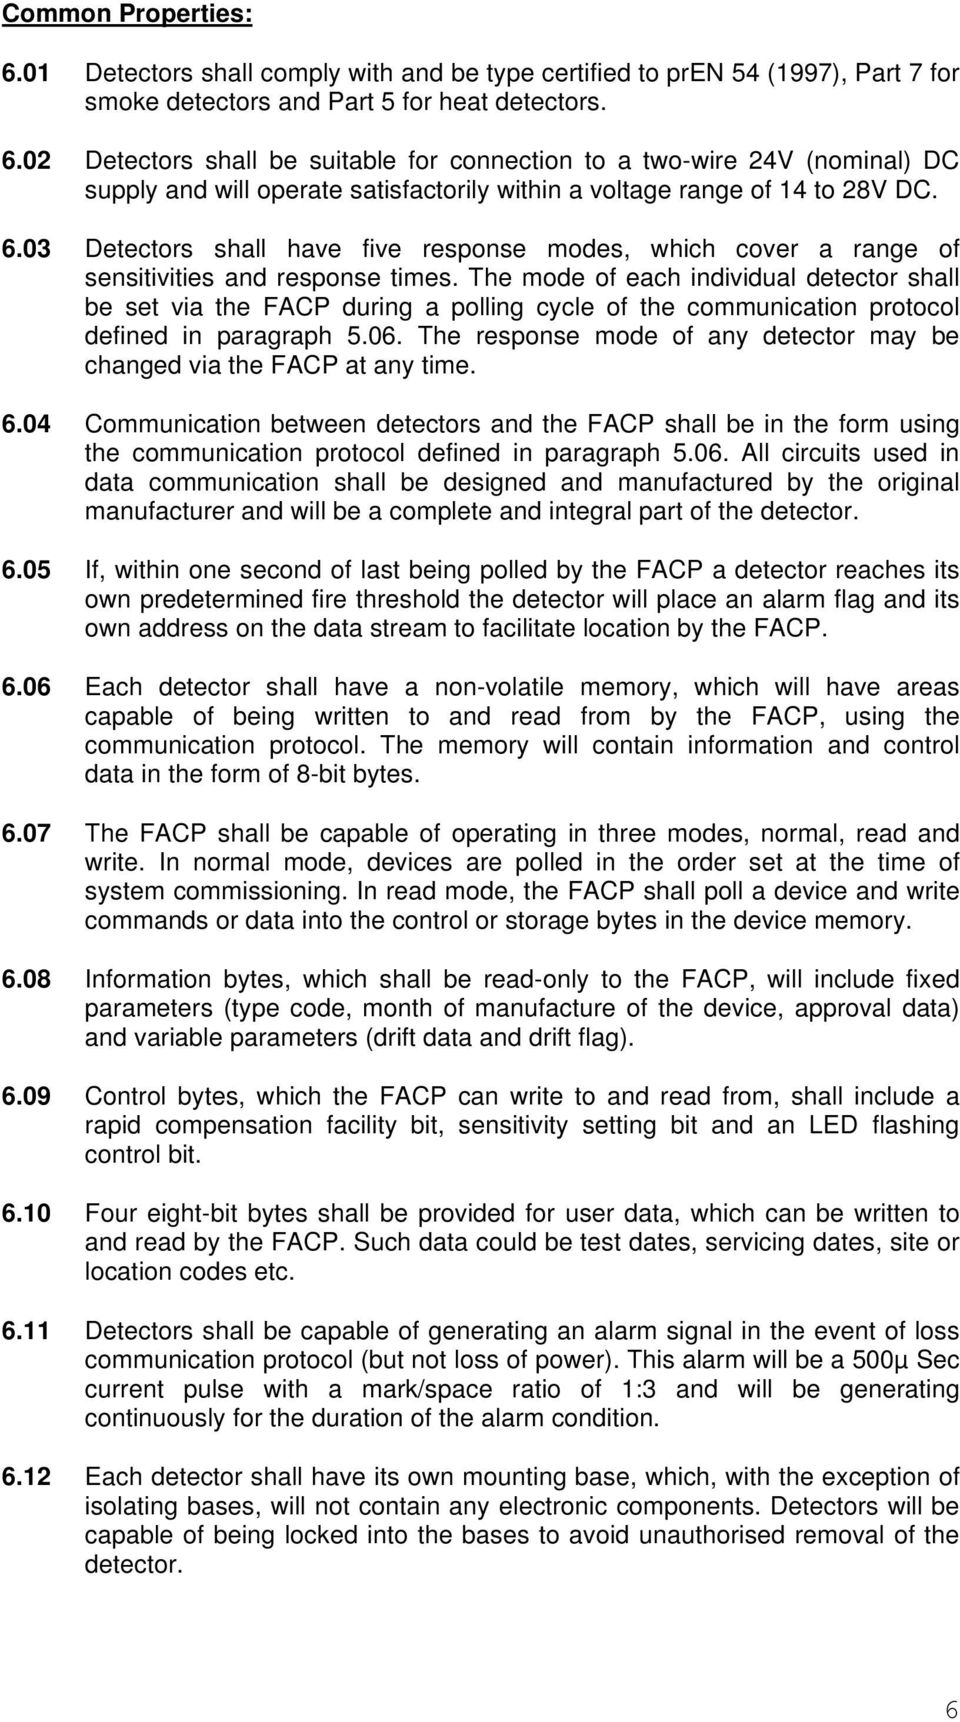 The mode of each individual detector shall be set via the FACP during a polling cycle of the communication protocol defined in paragraph 5.06.